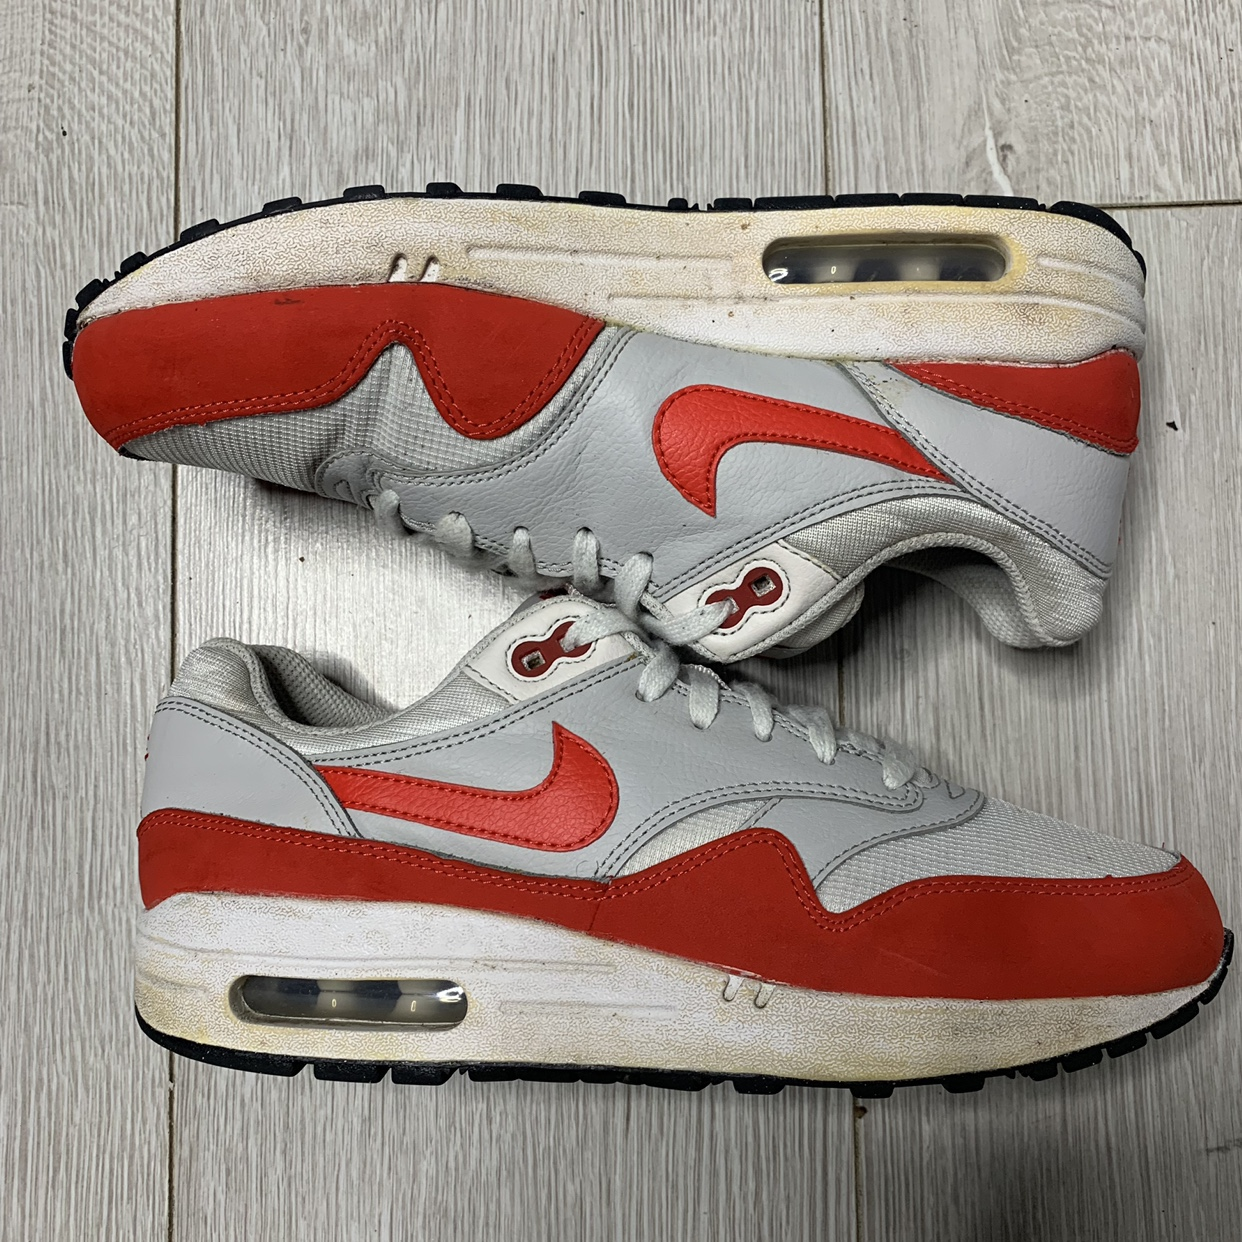 Nike Air Max 1 Size 5.5 EU 38.5, Trainers have been...